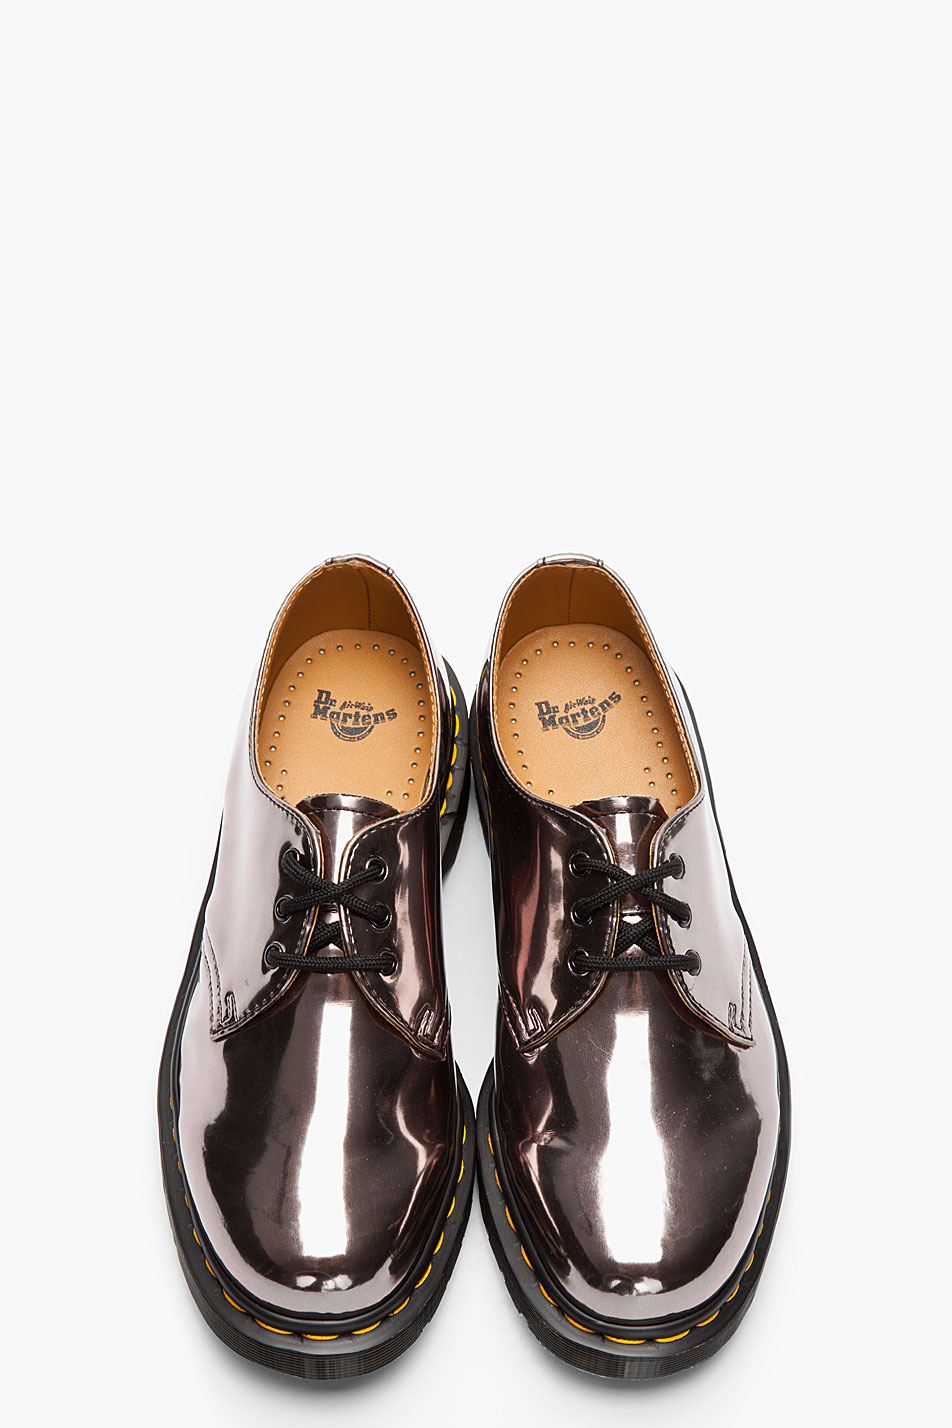 Ecco Metallic Lace Up Shoes